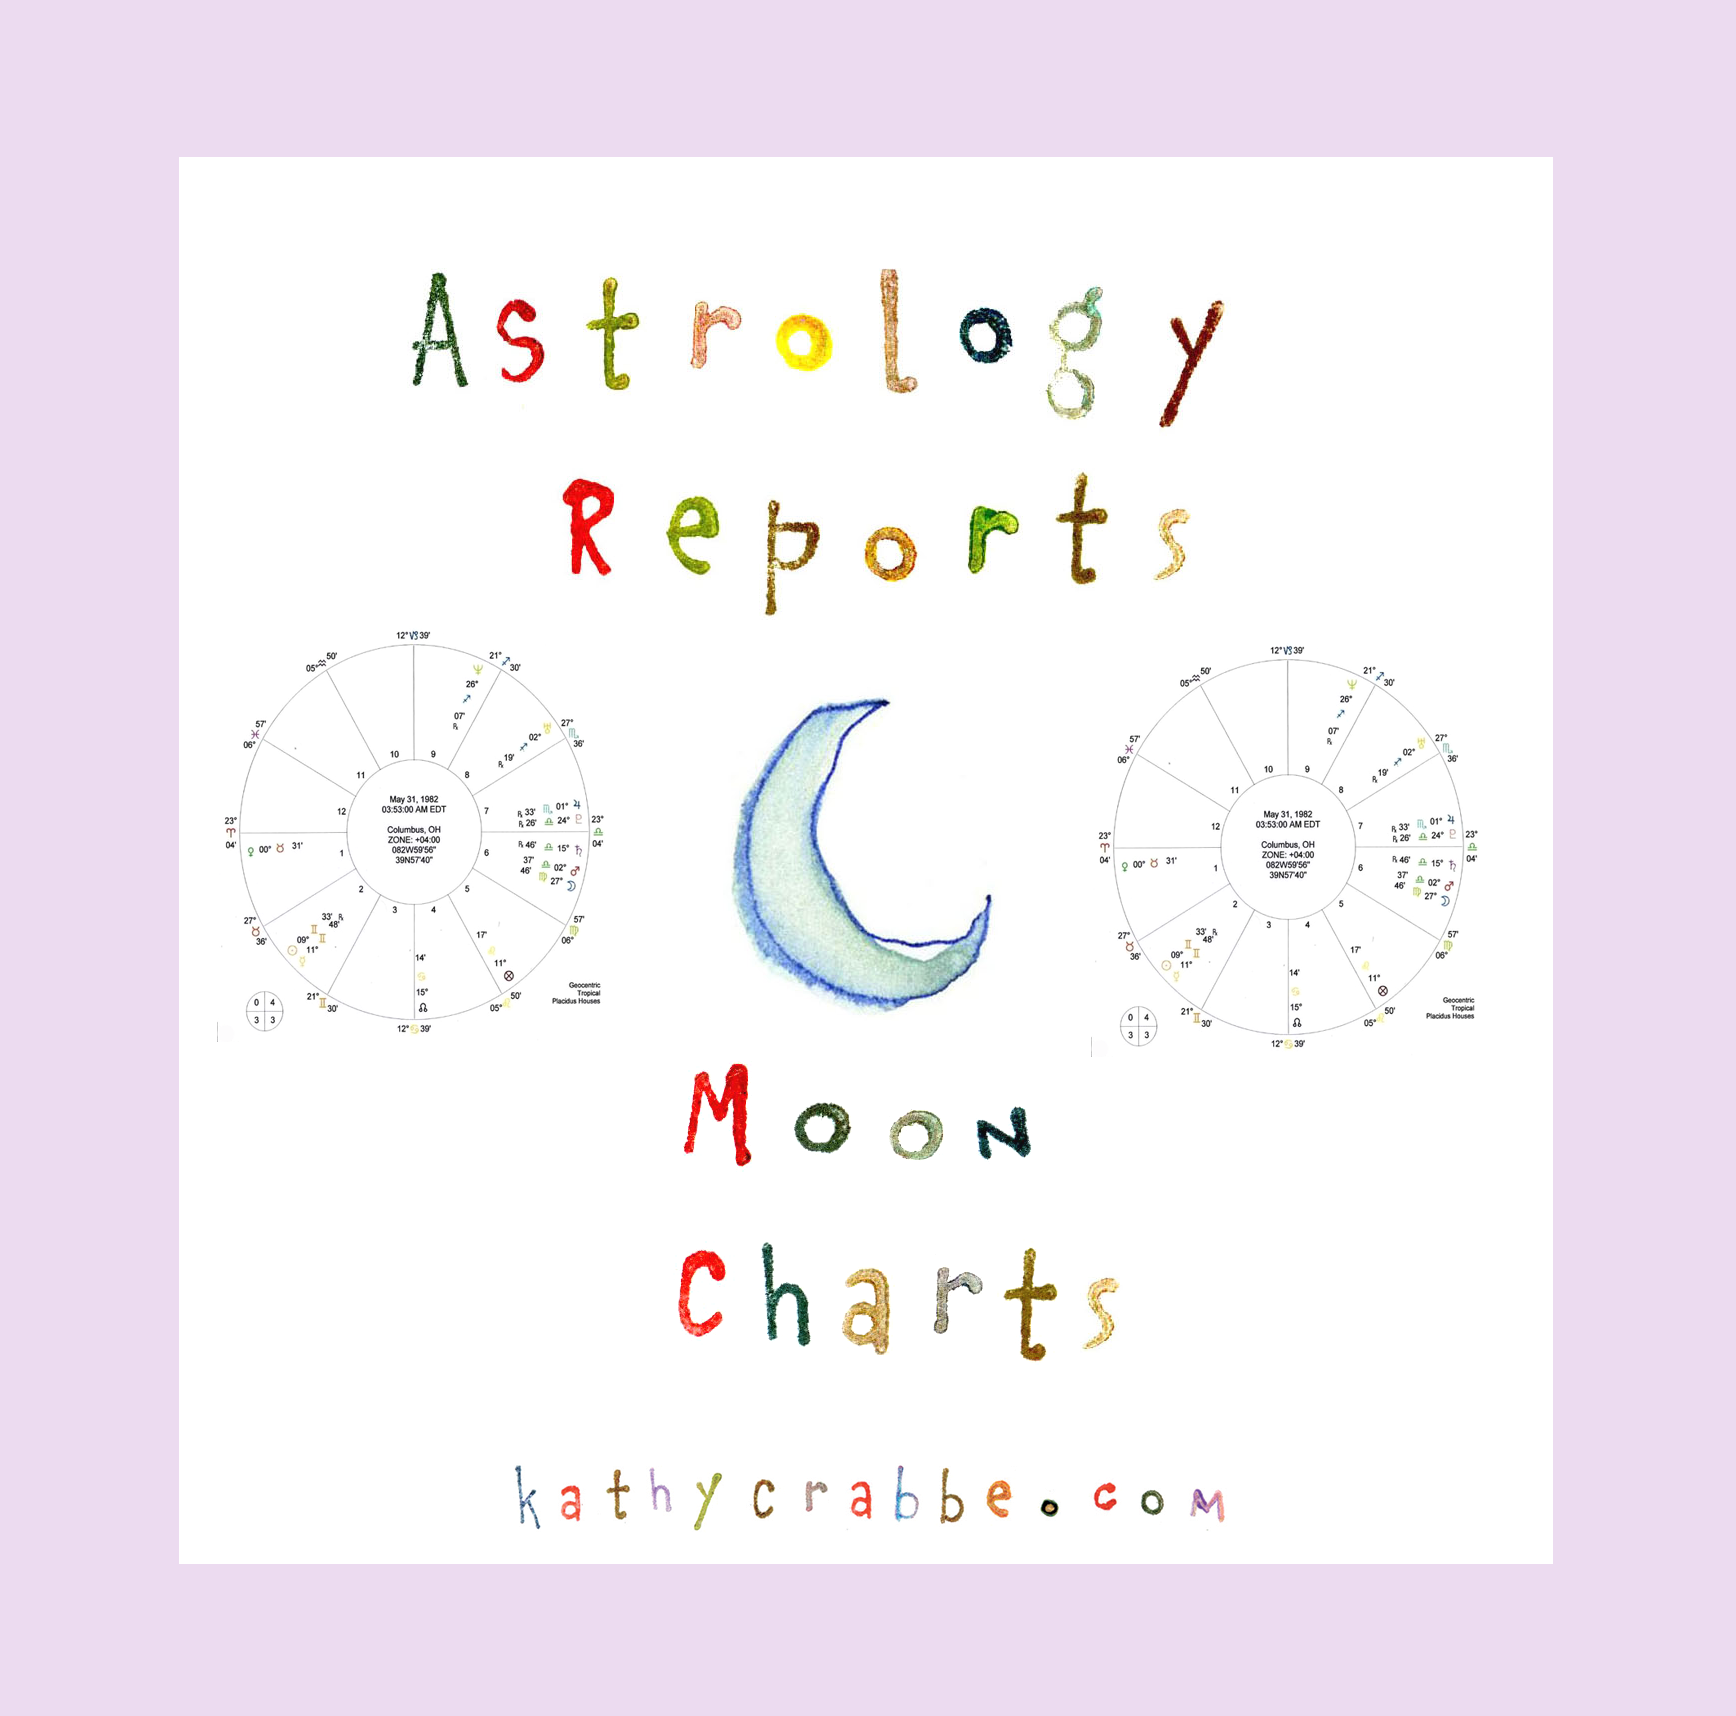 Astro Reports Moon Charts by Kathy Crabbe